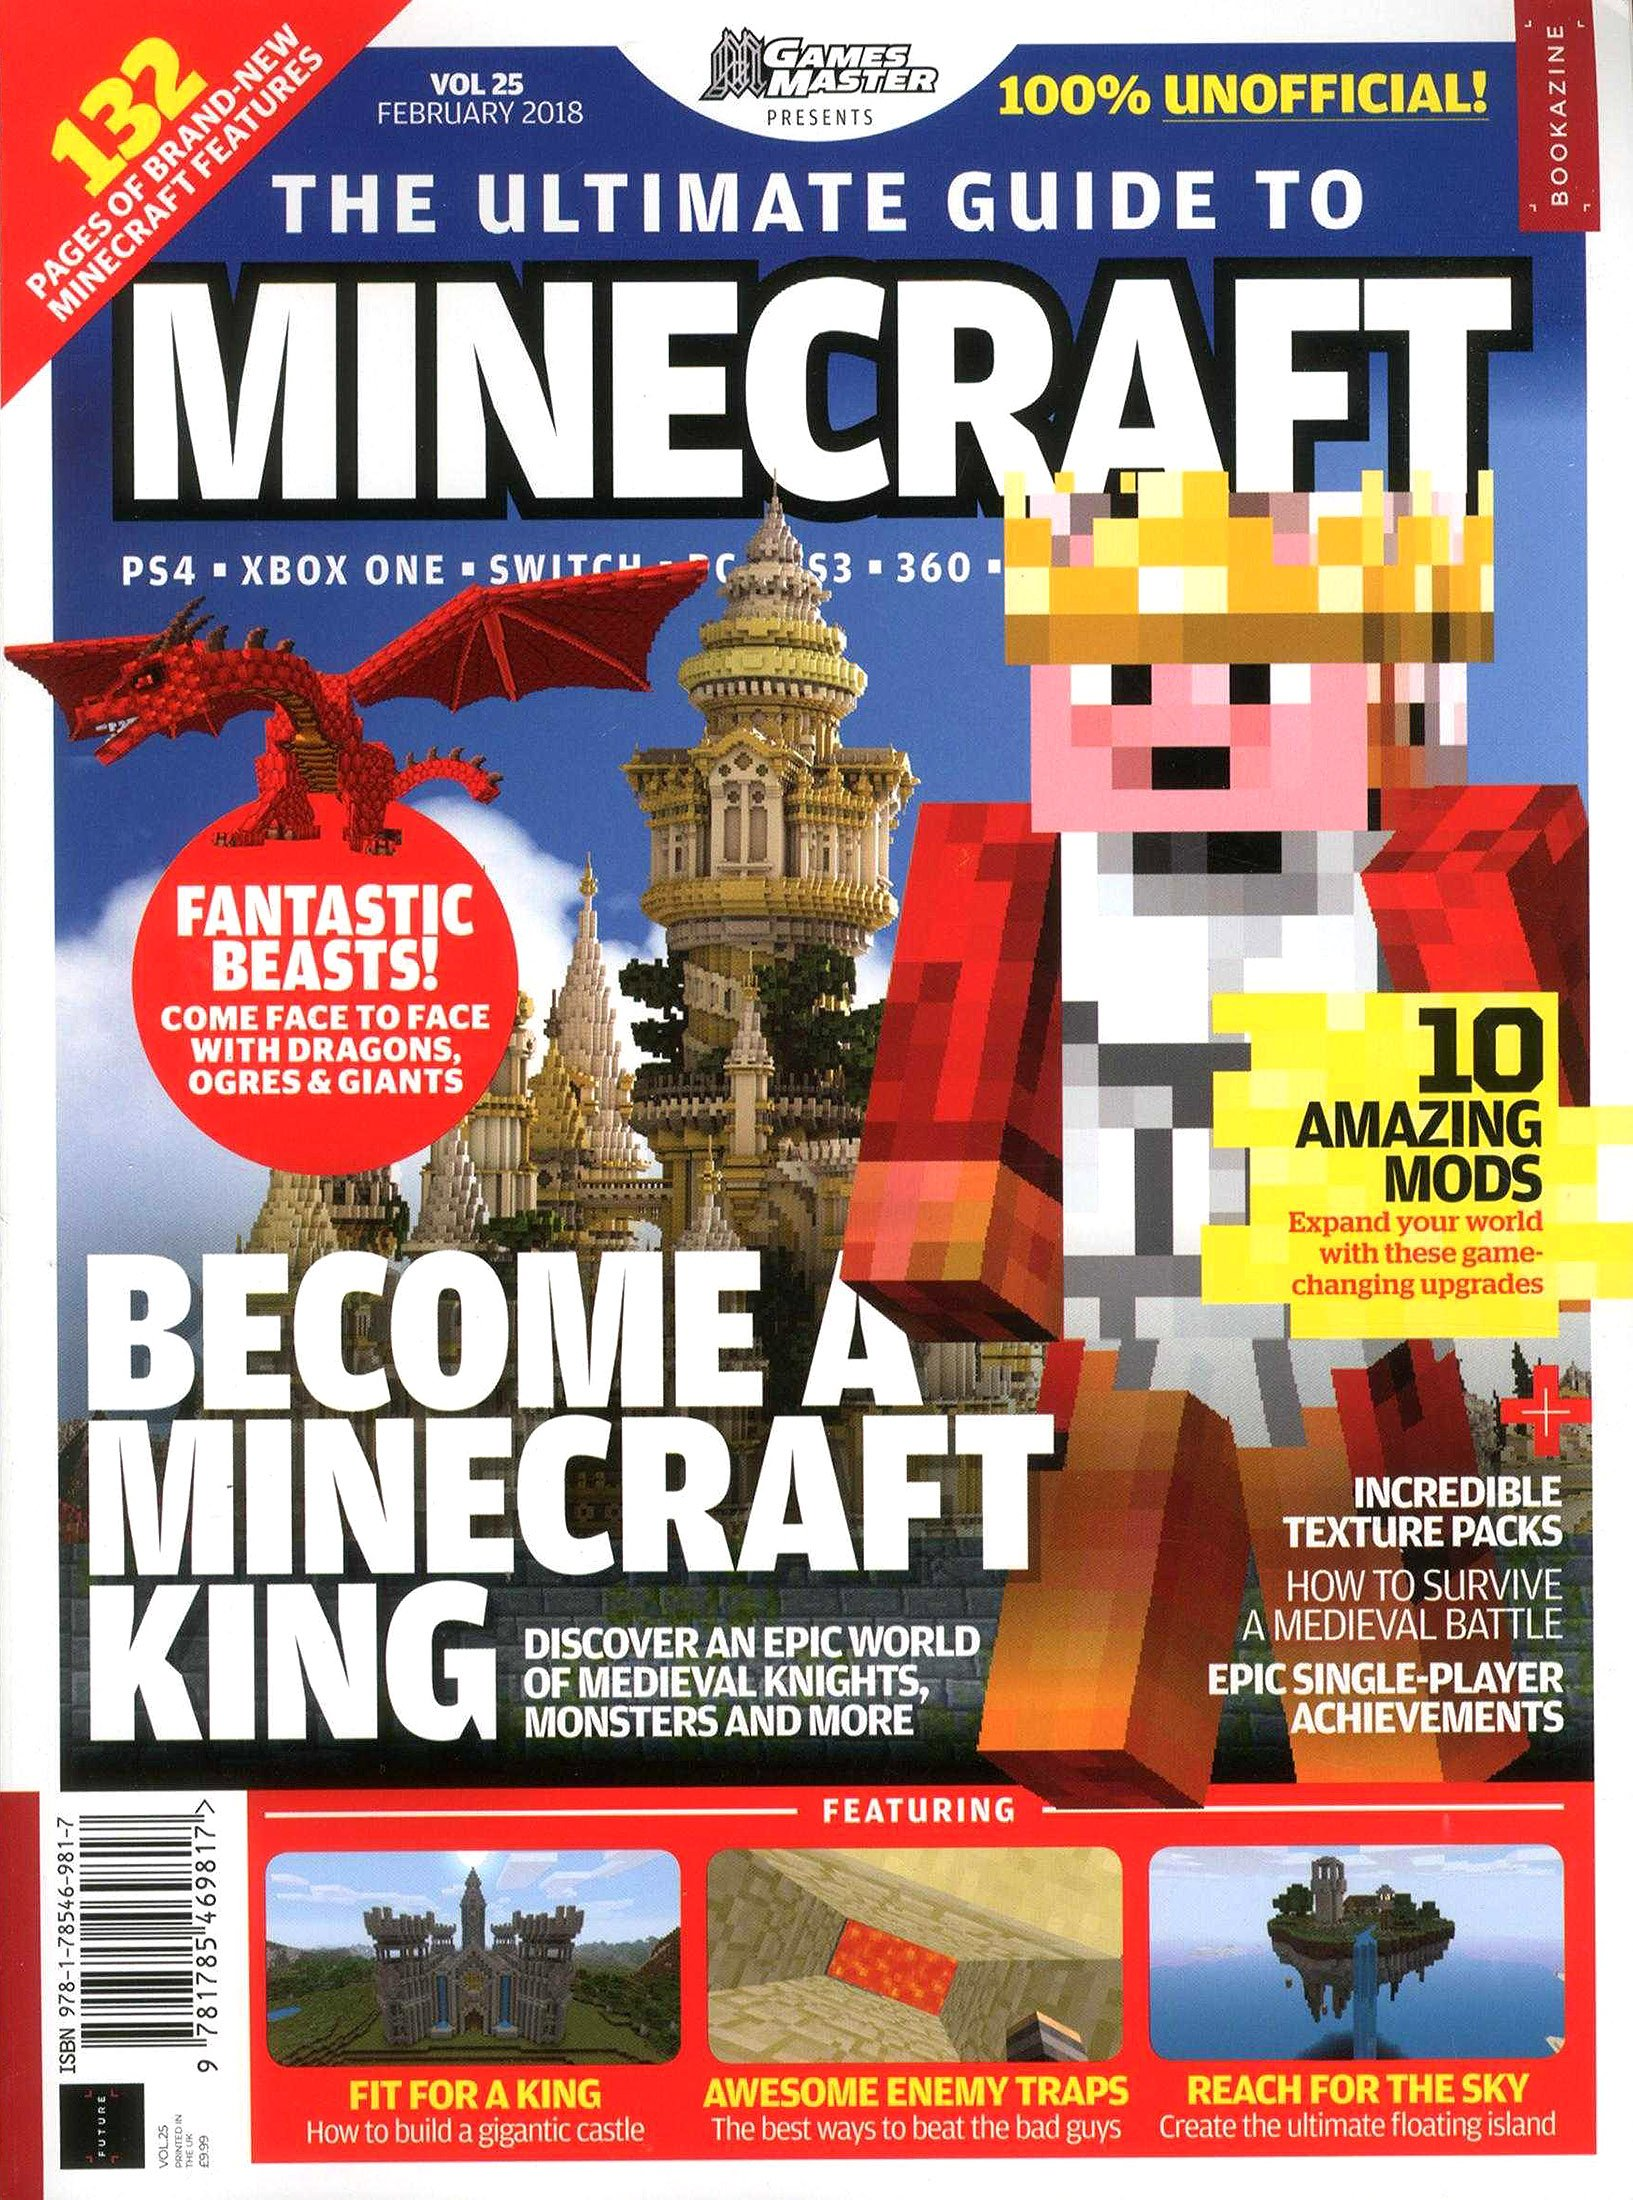 GamesMaster Presents: The Ultimate Guide to Minecraft Vol.25 (February 2018)